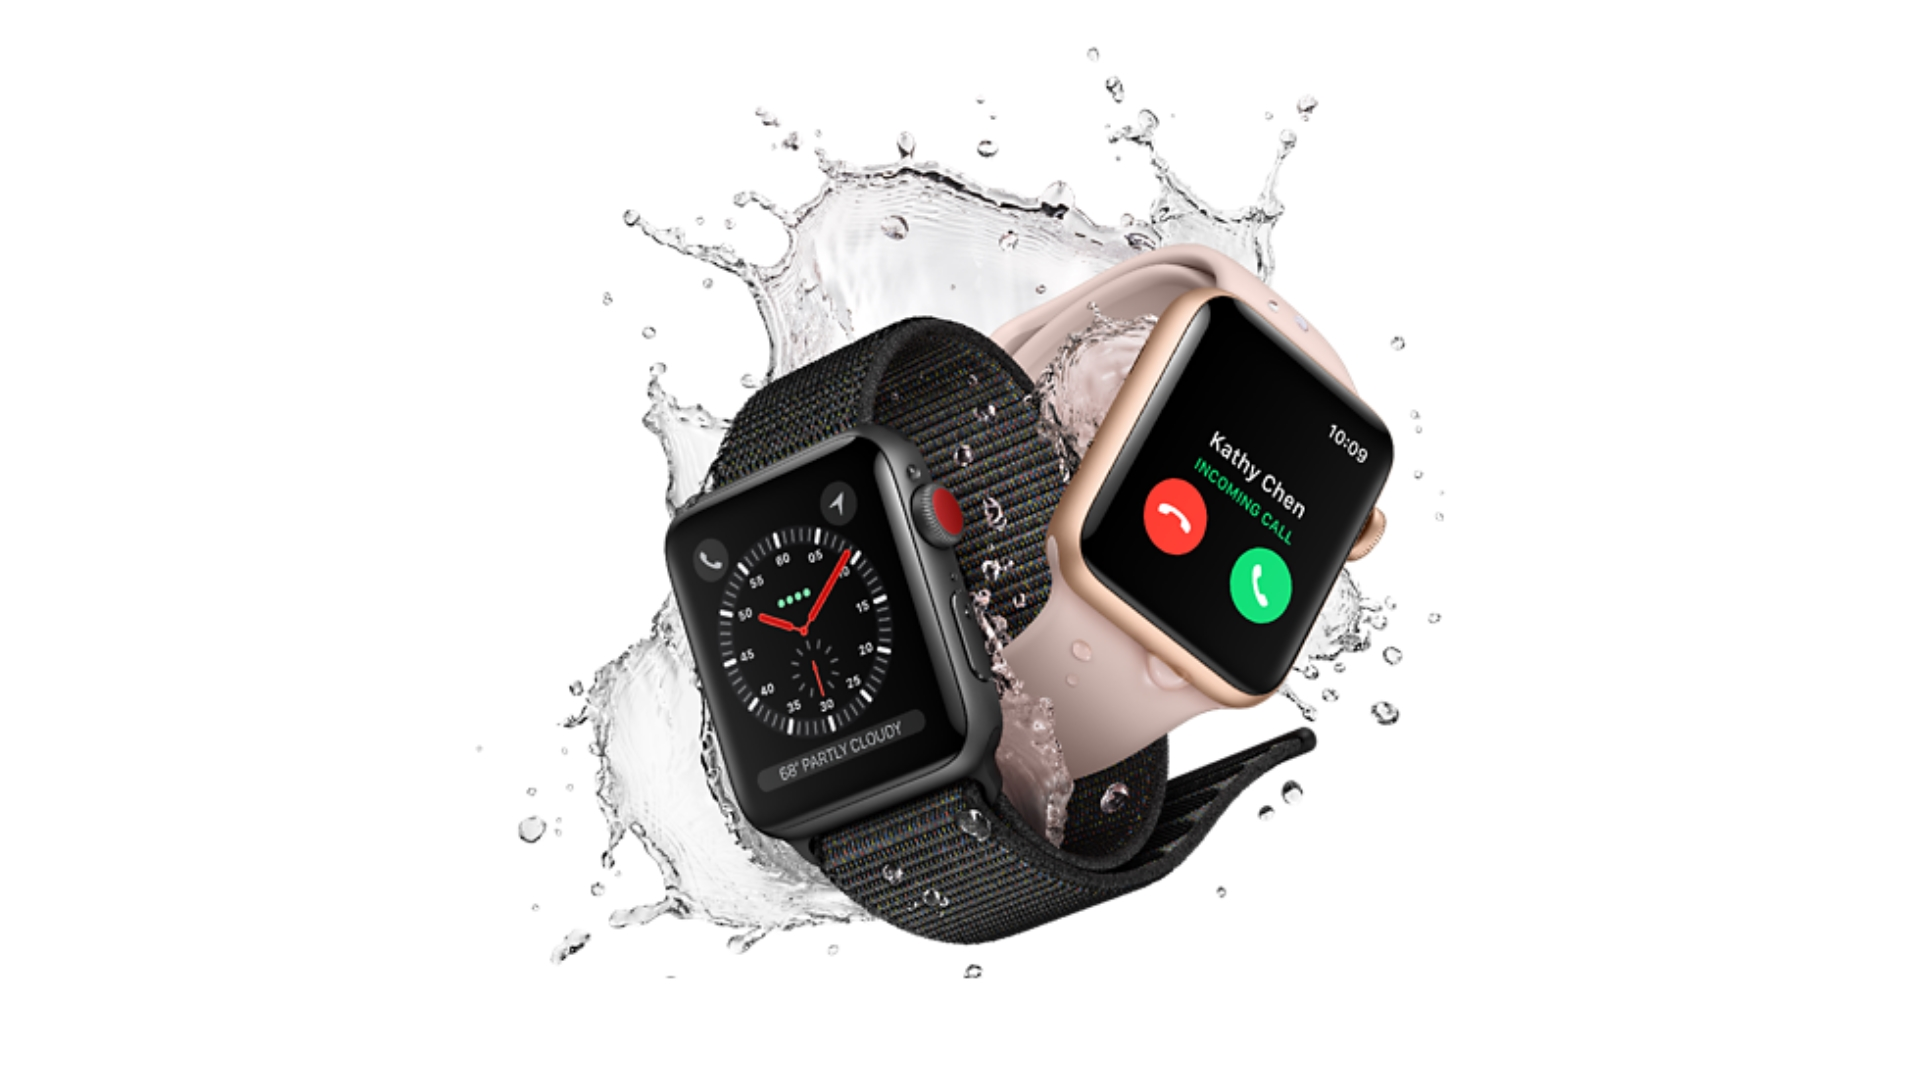 Apple Watch Series 3 LTE officially goes on sale in the UAE